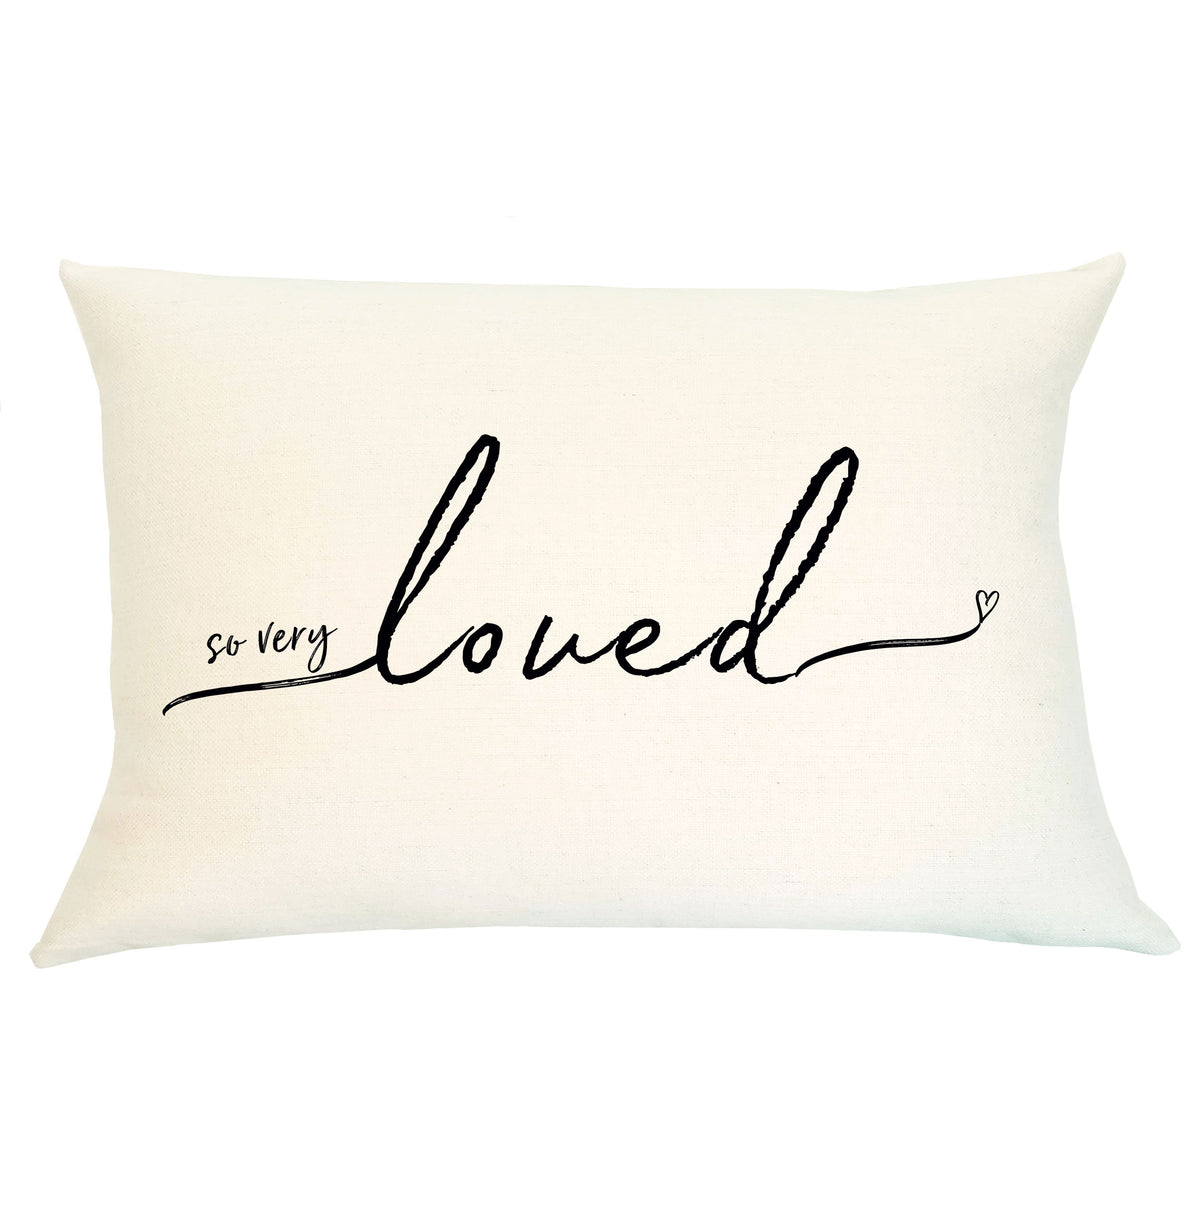 Pillow Lumbar - So Very Loved - Insert Included